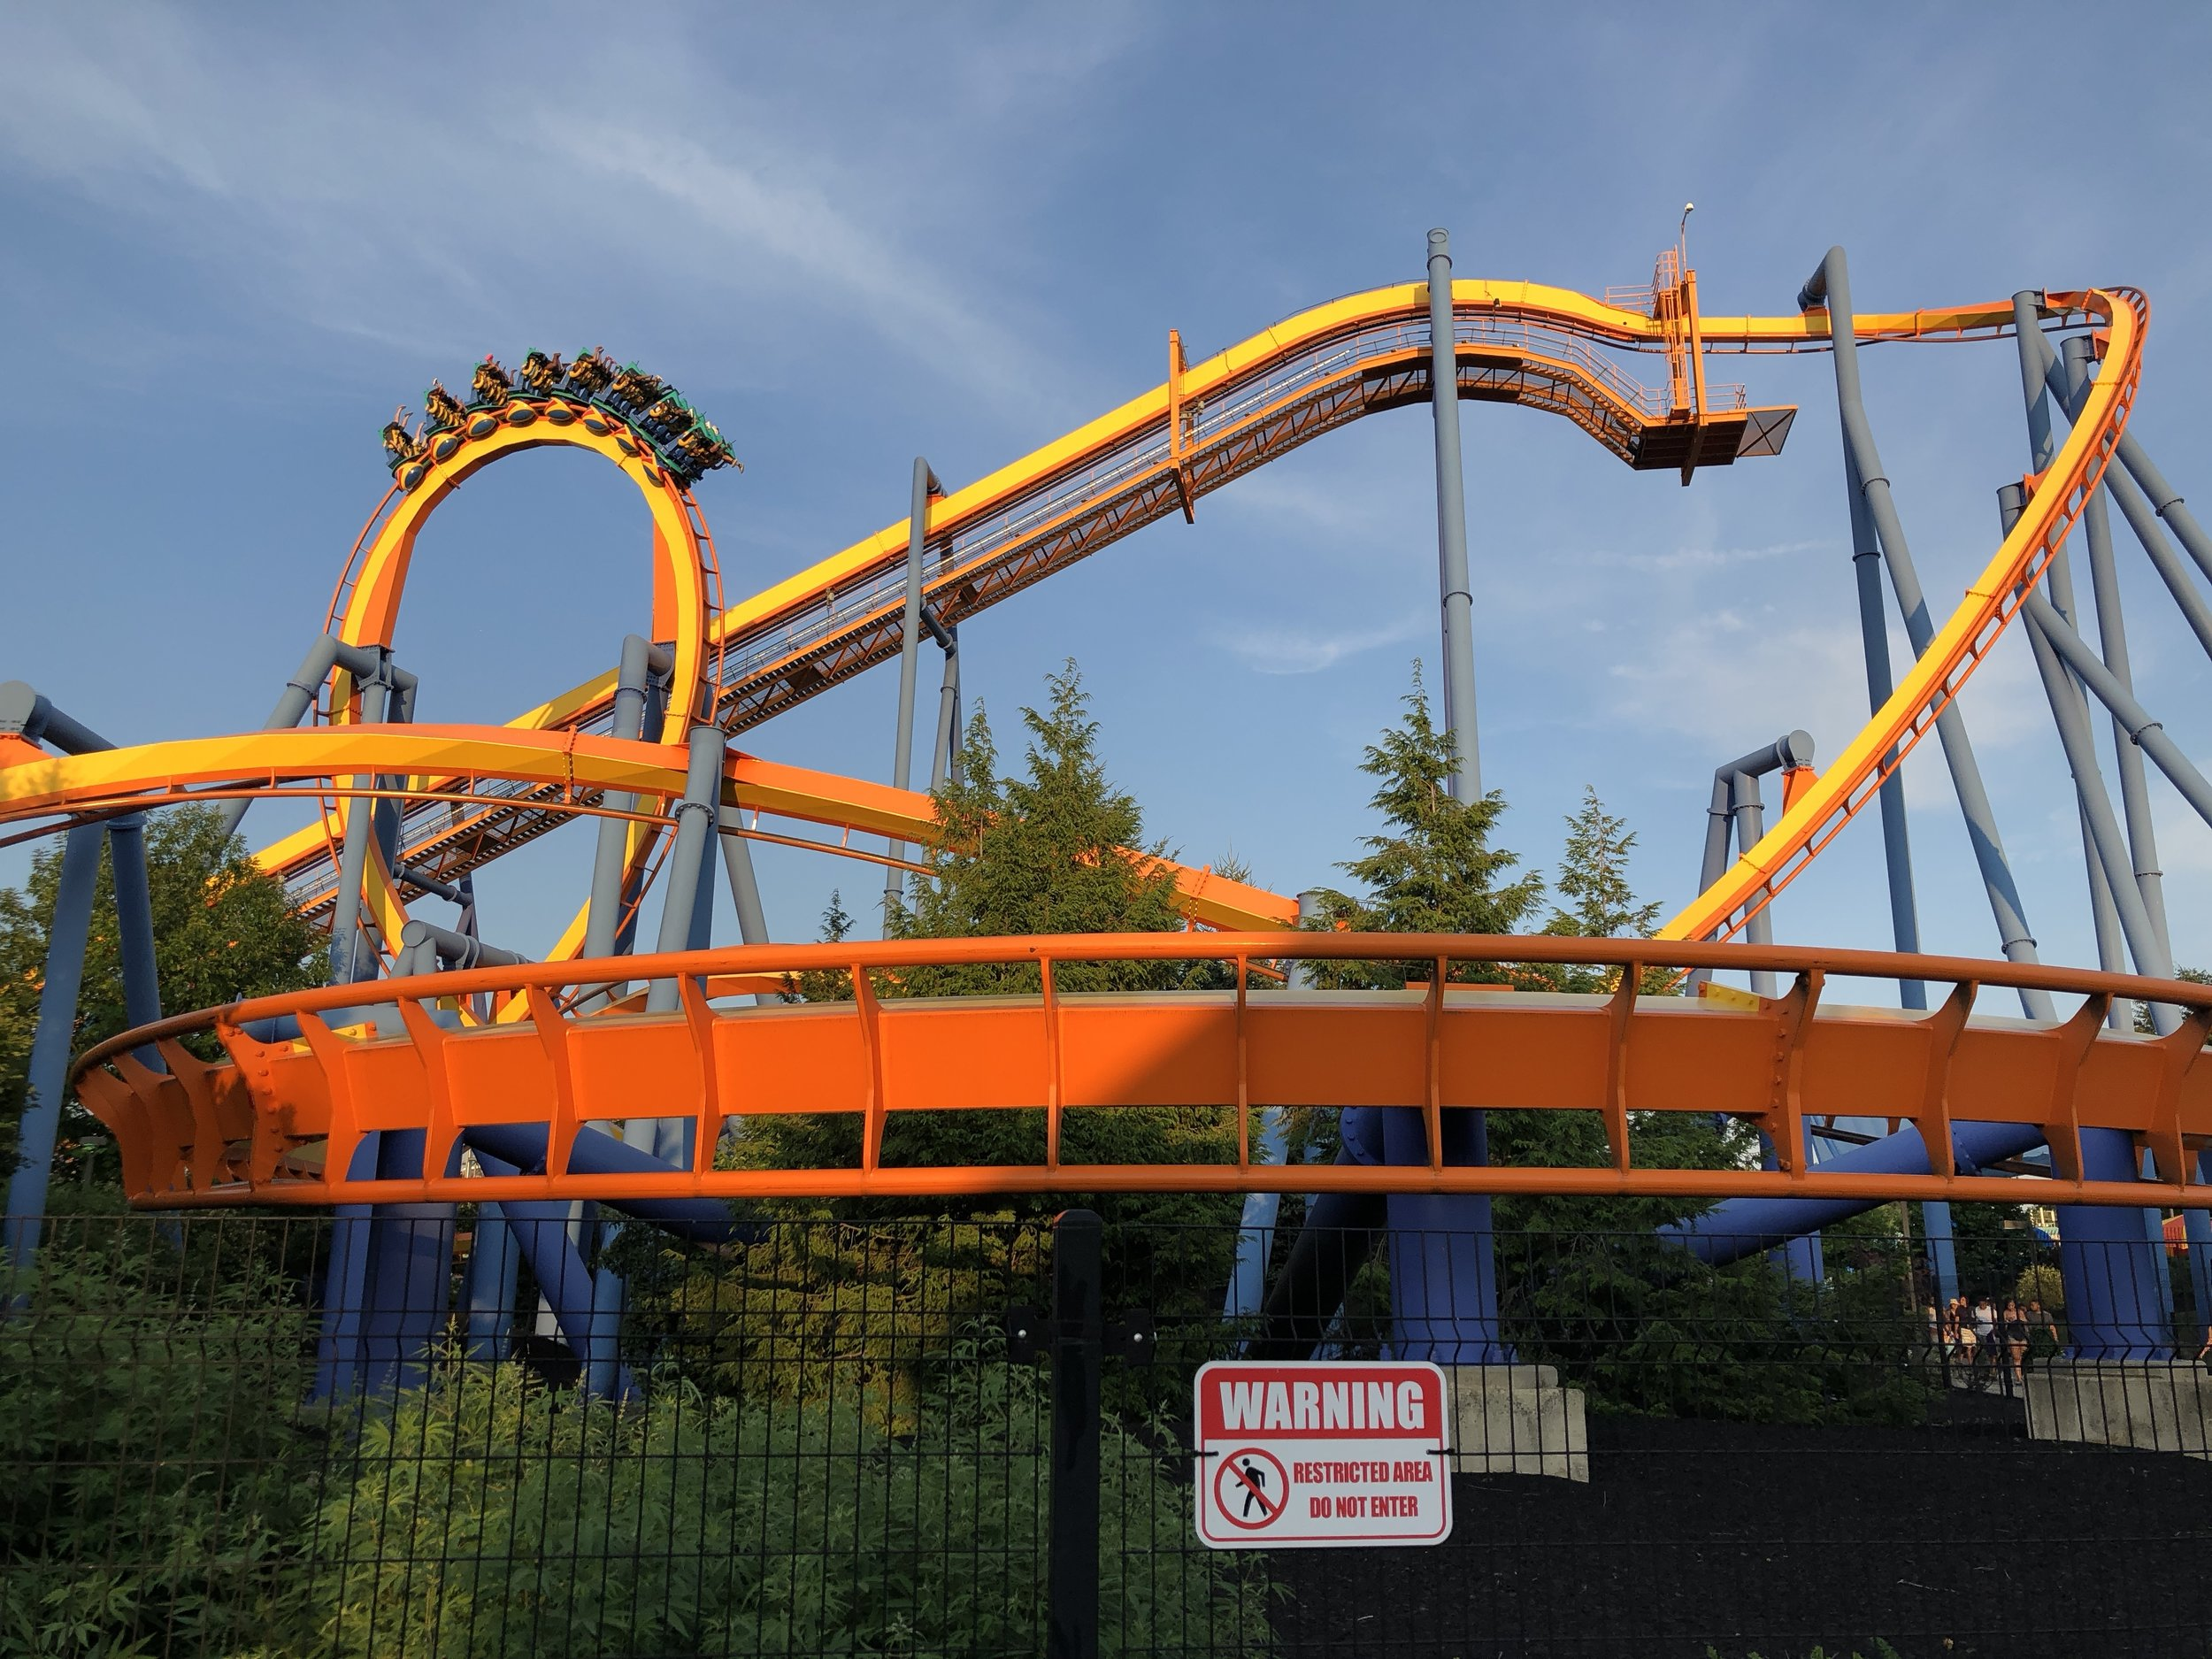 Talon - the only one I didn't ride.